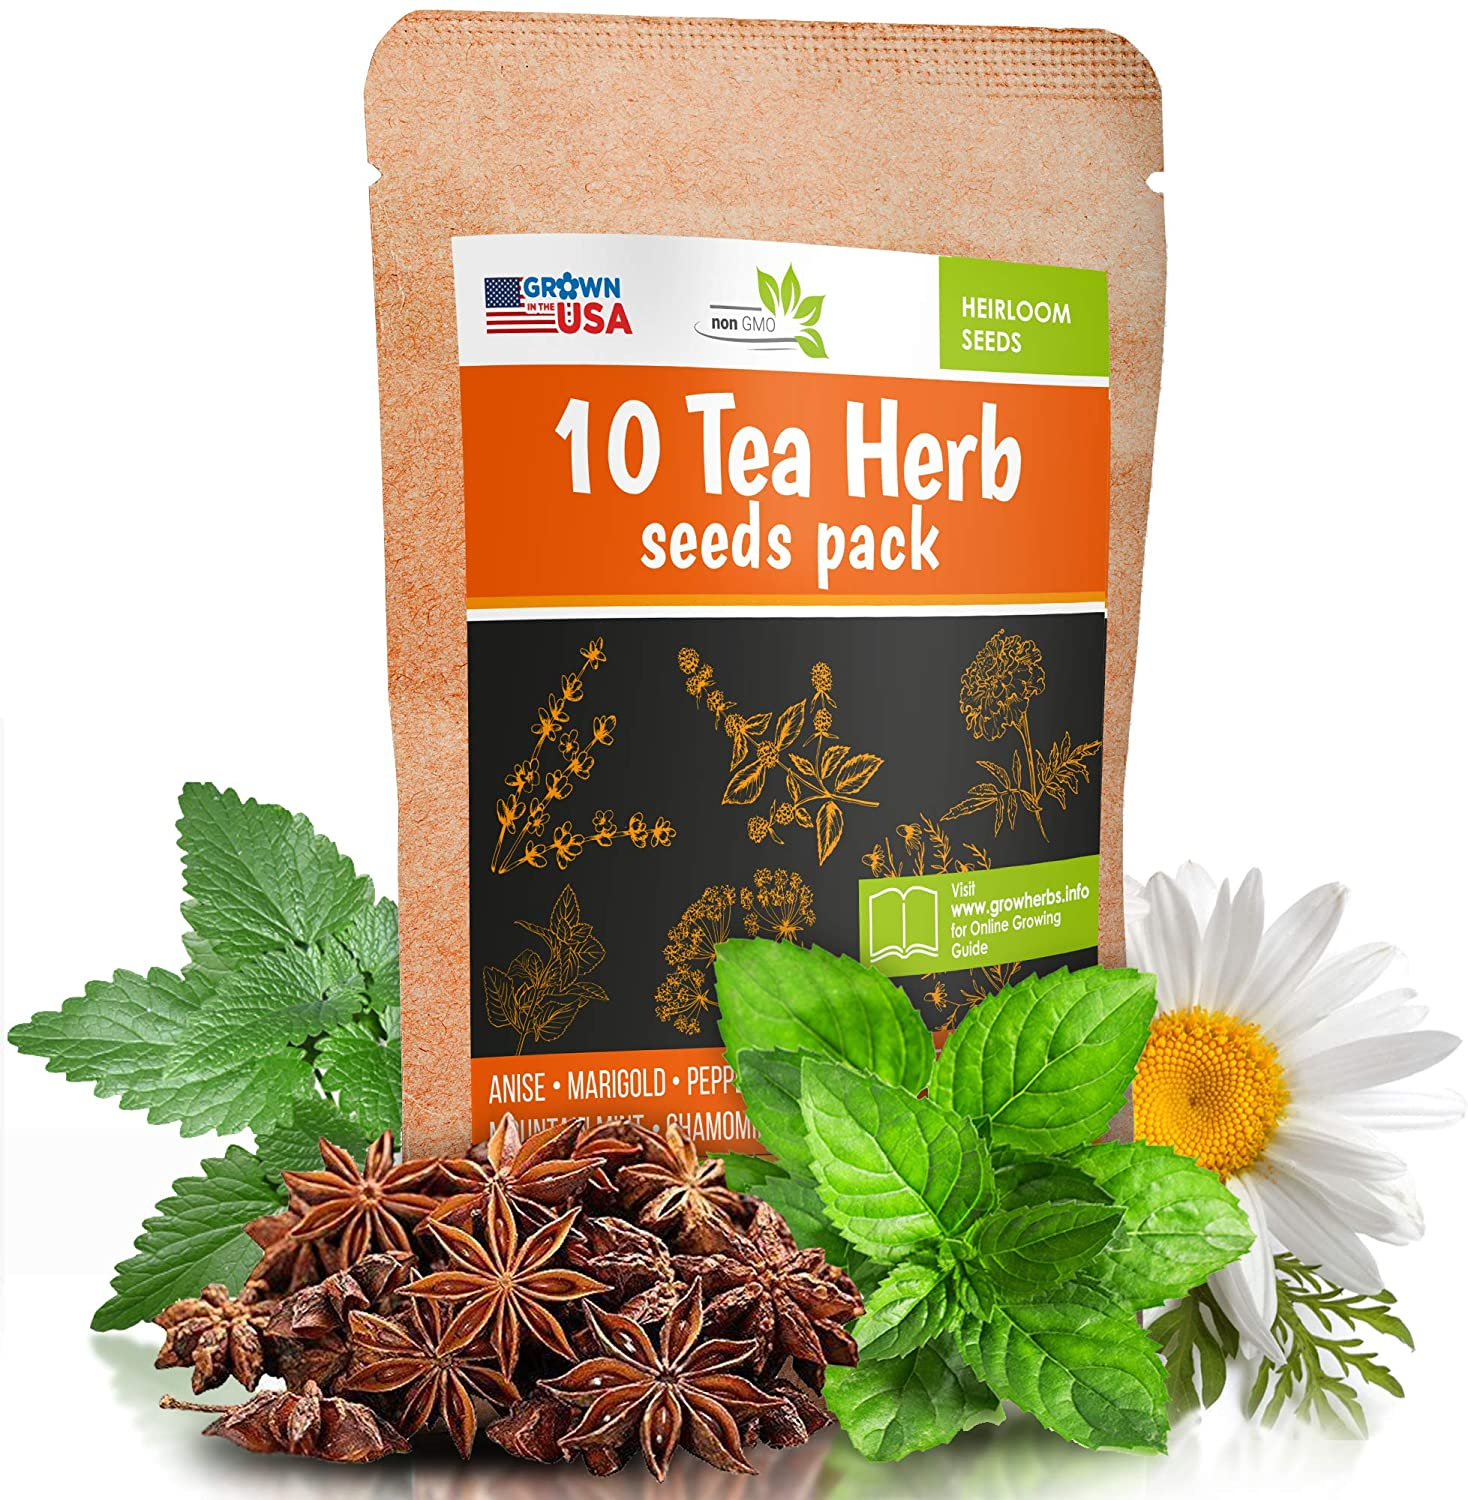 10 Herbal and Medical Tea Seeds Pack - Heirloom and Non GMO, Grown in USA - Indoor or Outdoor Garden - Chamomile, Lavender, Mint, Lemon Balm, Catnip, Peppermint, Anise, Coneflower Echinacea & More